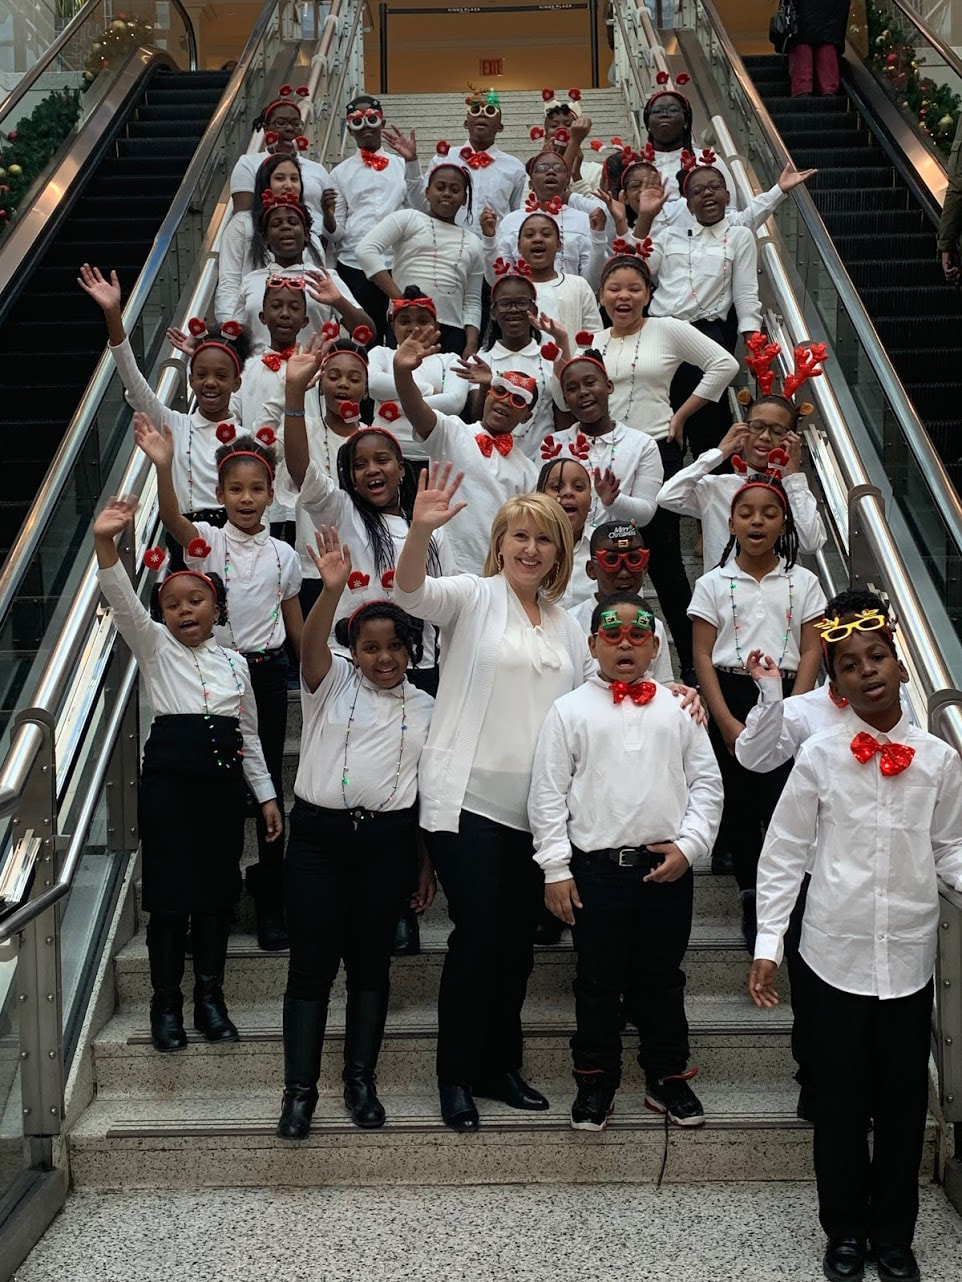 Ms. Grechko with chorus on an escalator at Kings Plaza mall